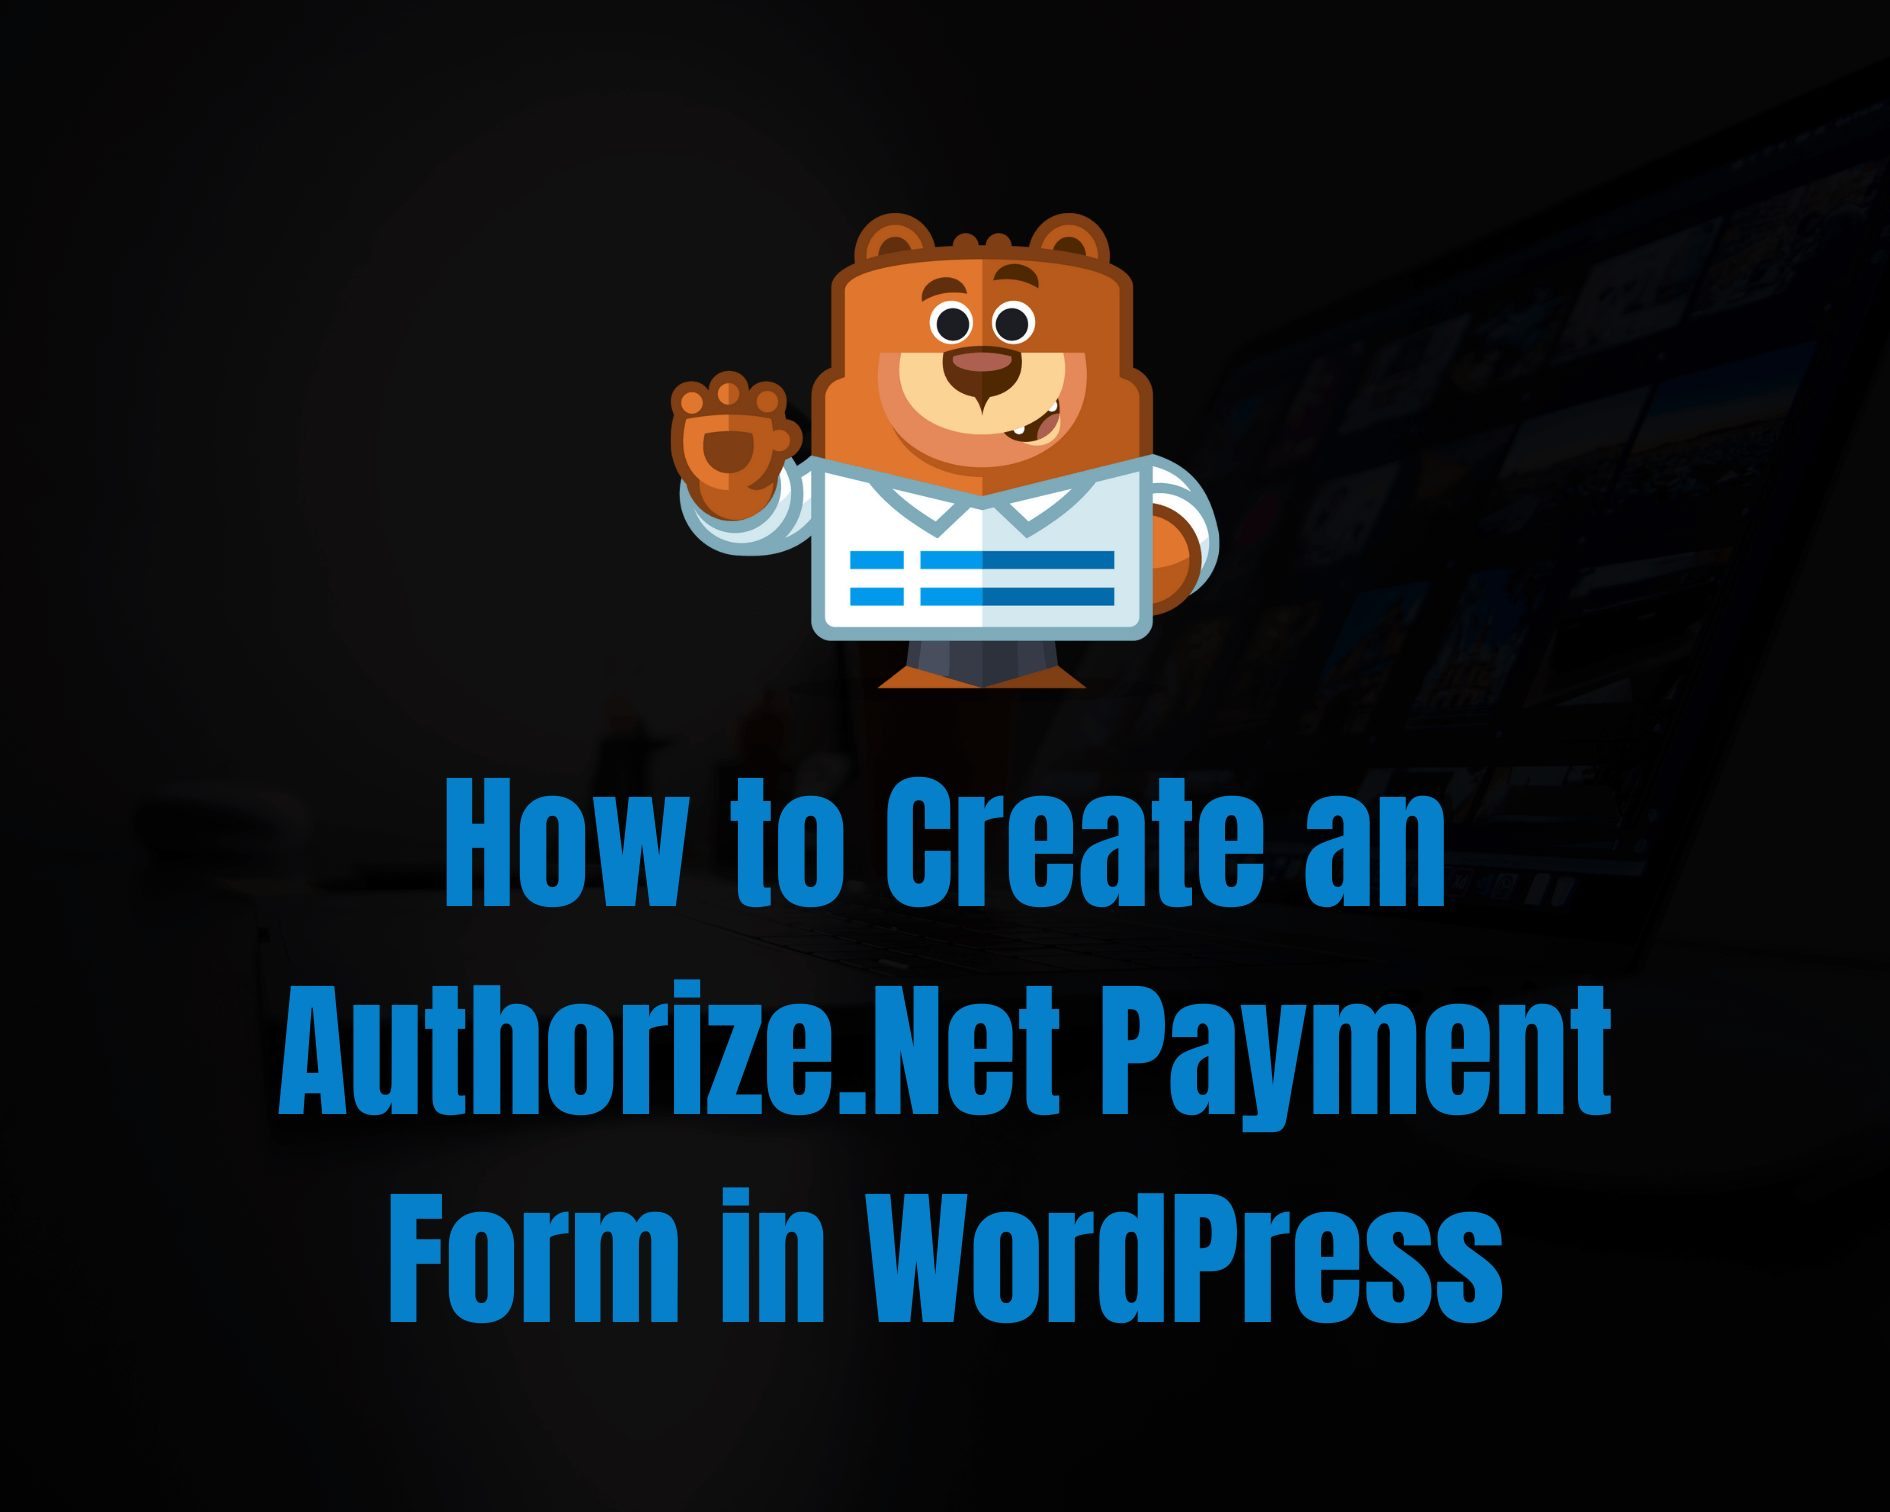 Authorize net payment form in wordpress